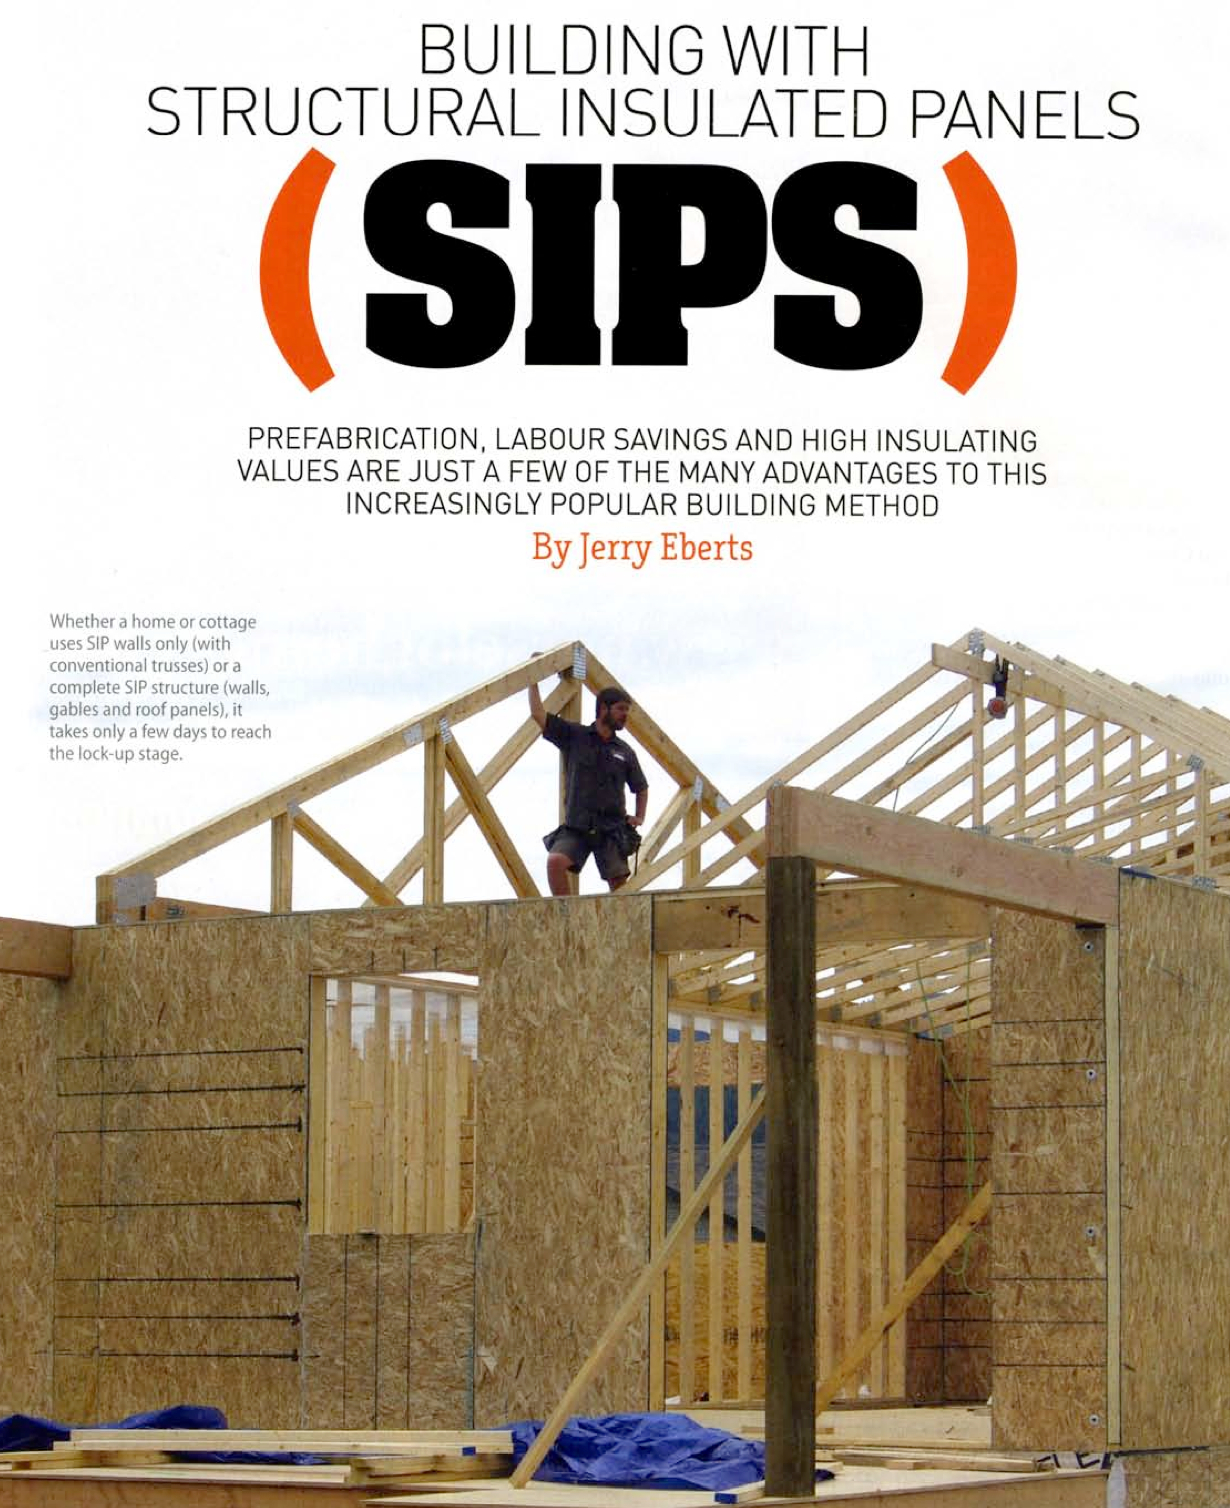 Canada building premier sips structural insulated panels for Sips panels canada